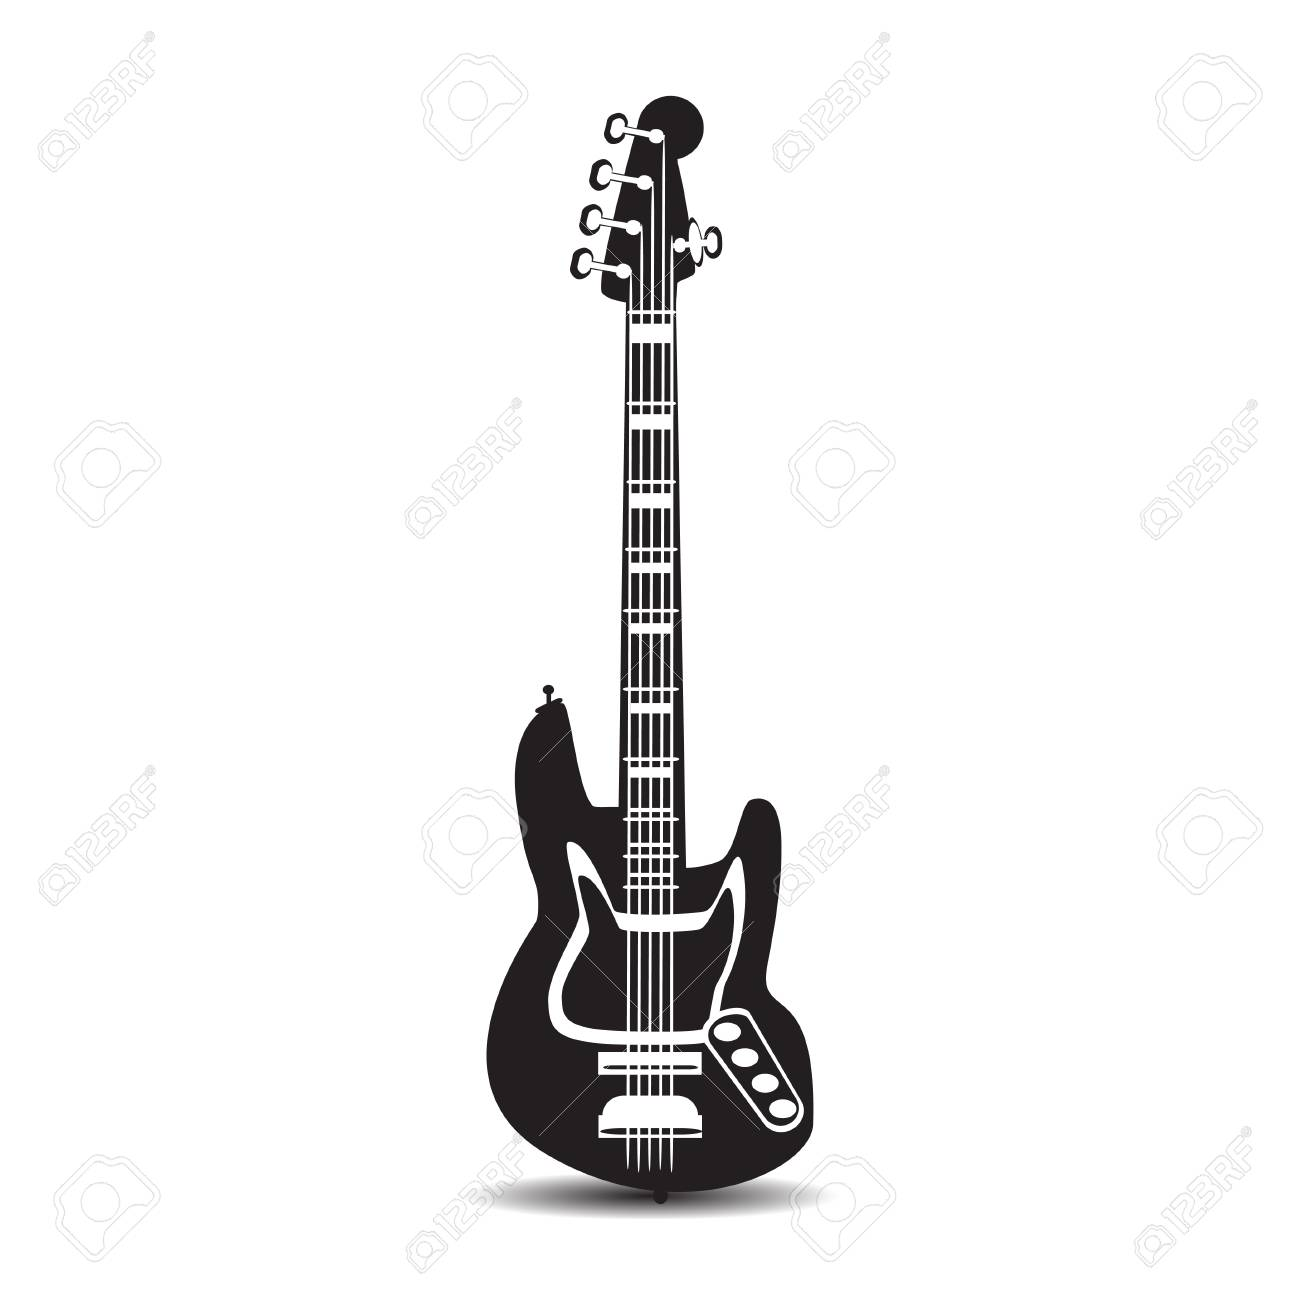 Black And White Electric Guitar Vector Illustration Of Bass